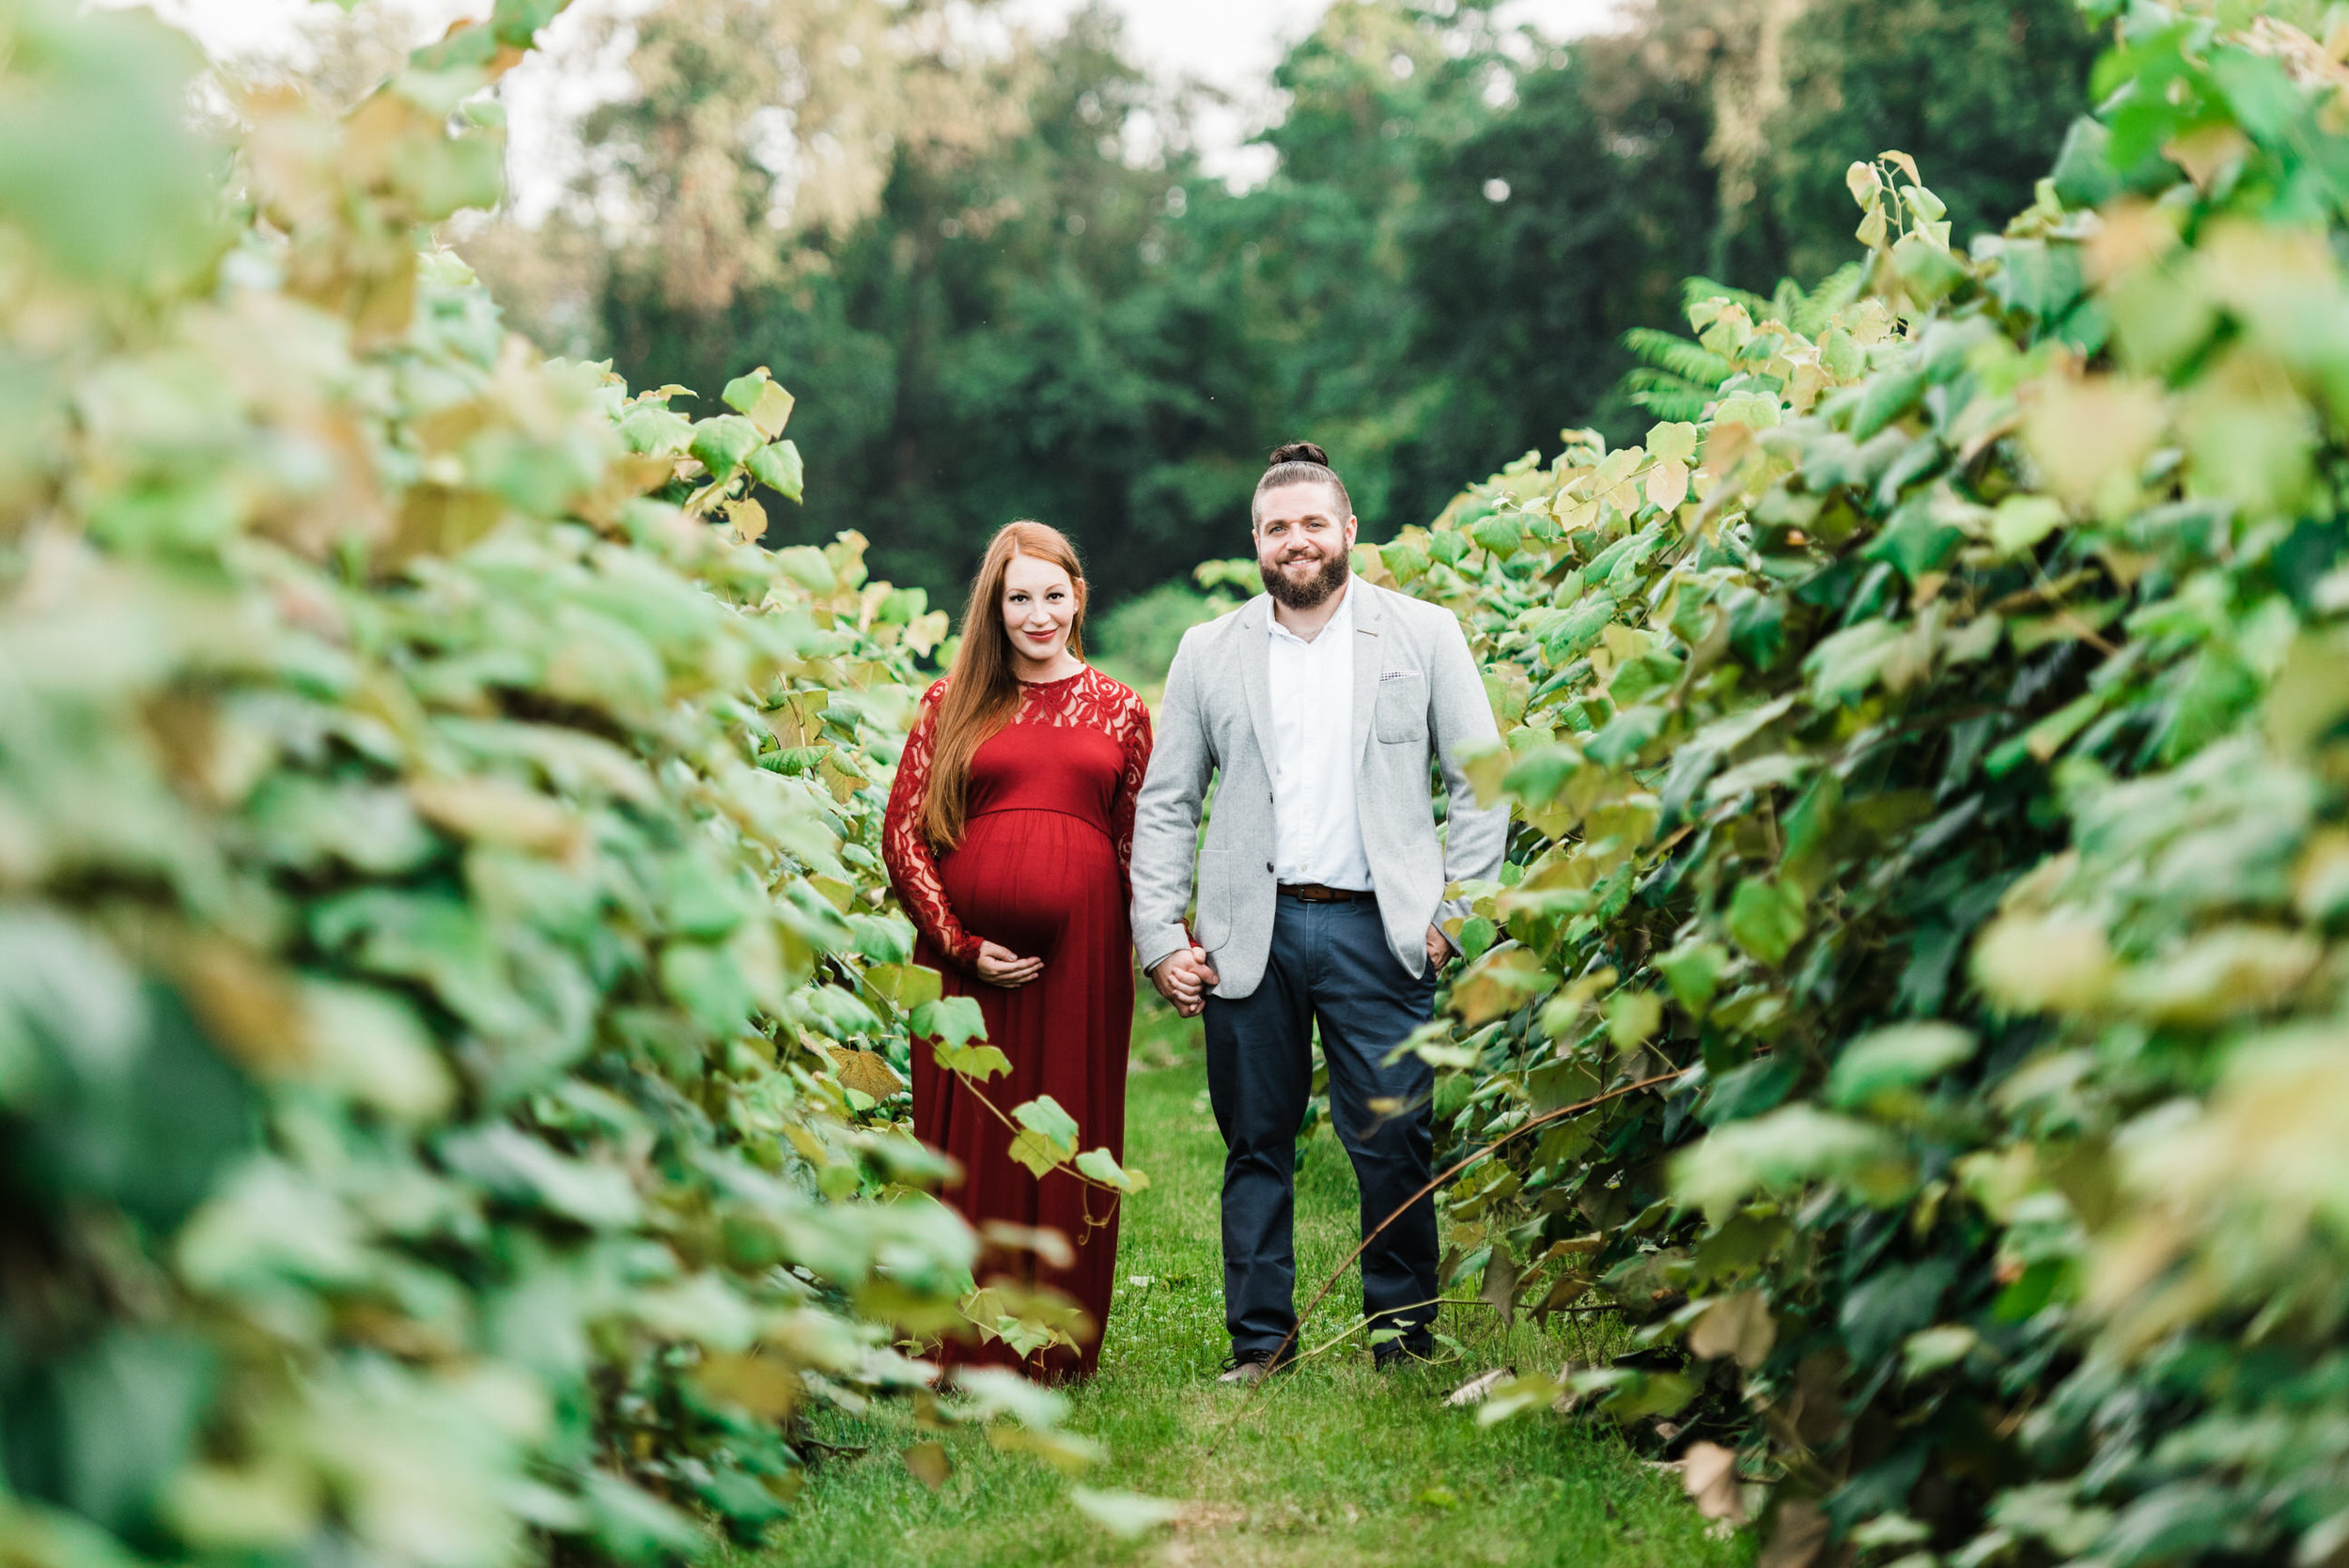 pittsburgh-maternity-photographers-winery-apple-orchard-session_41.jpg